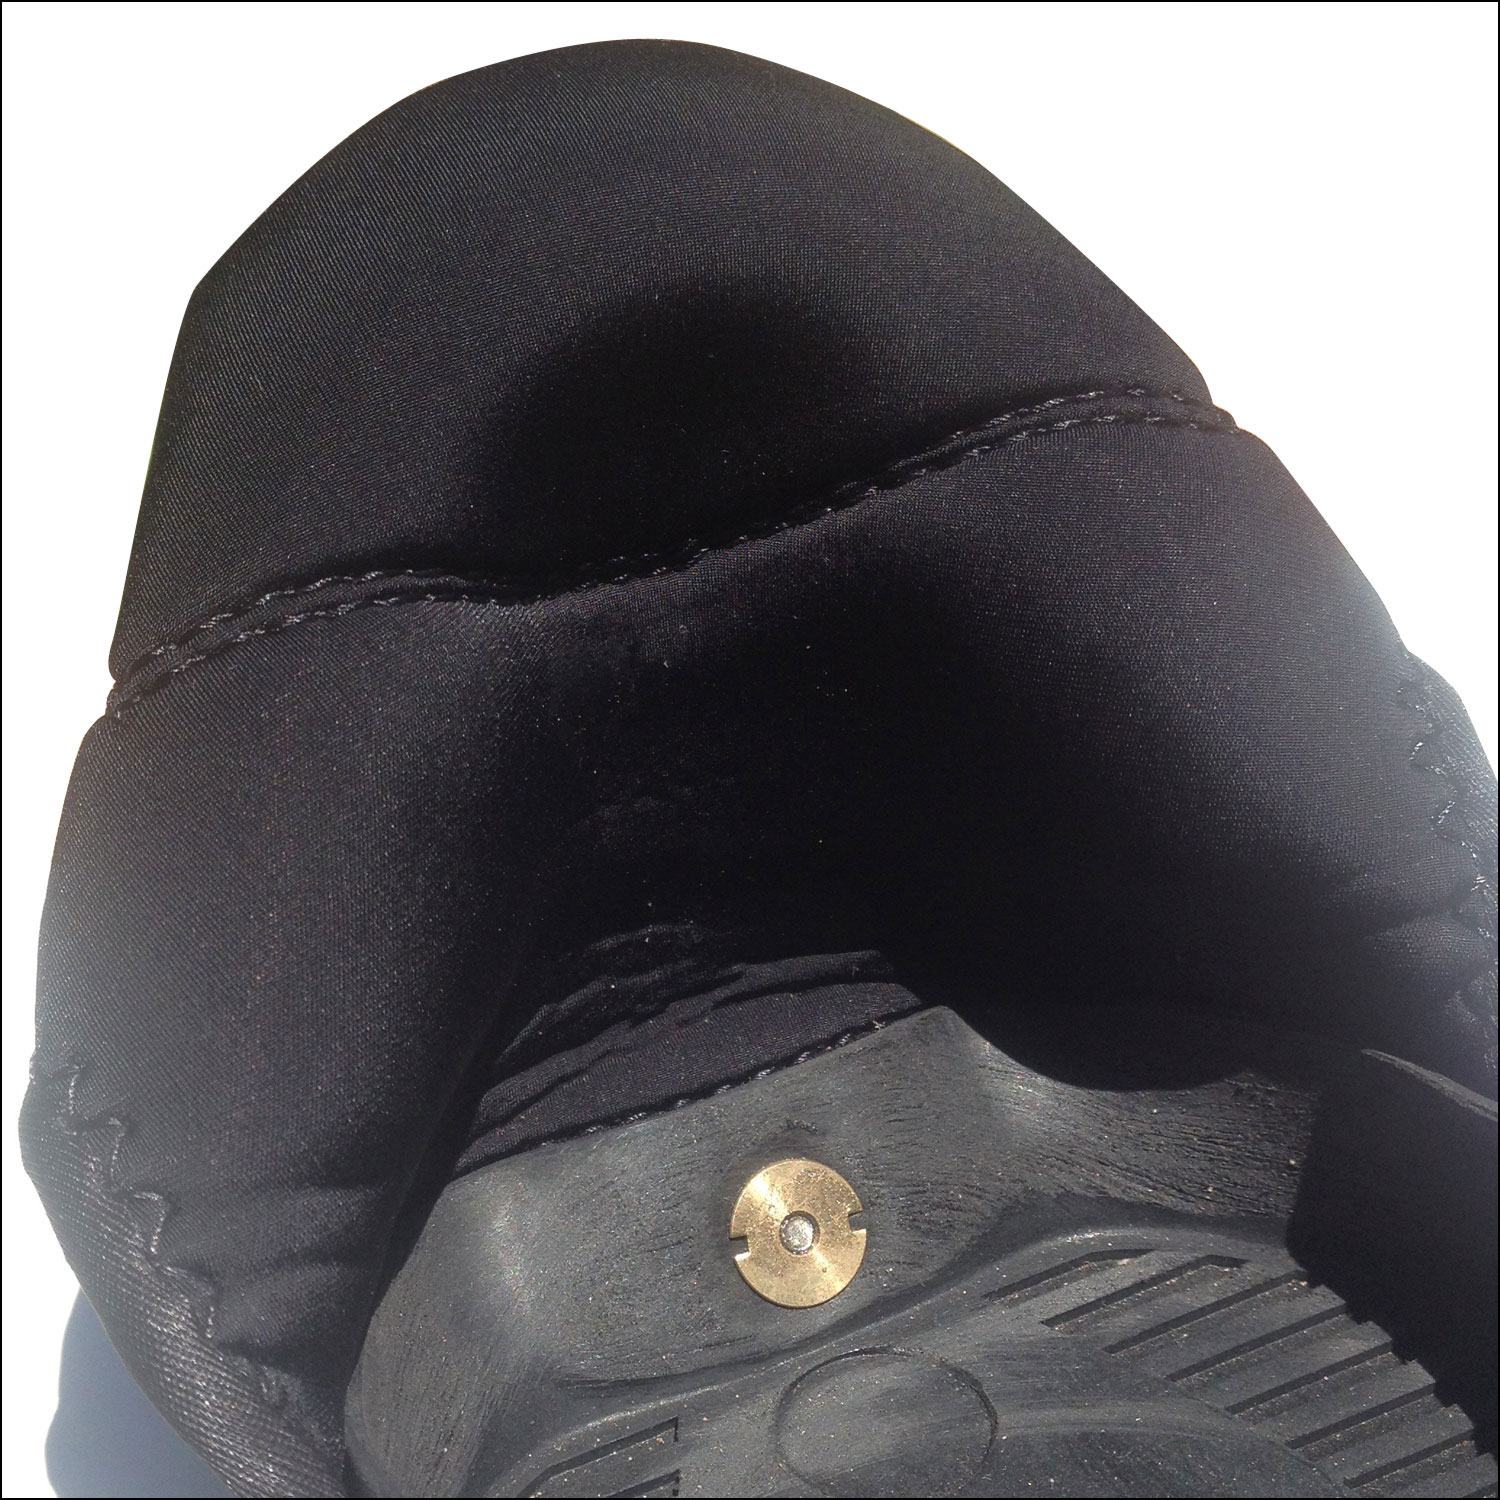 The inner lining is made of very soft material